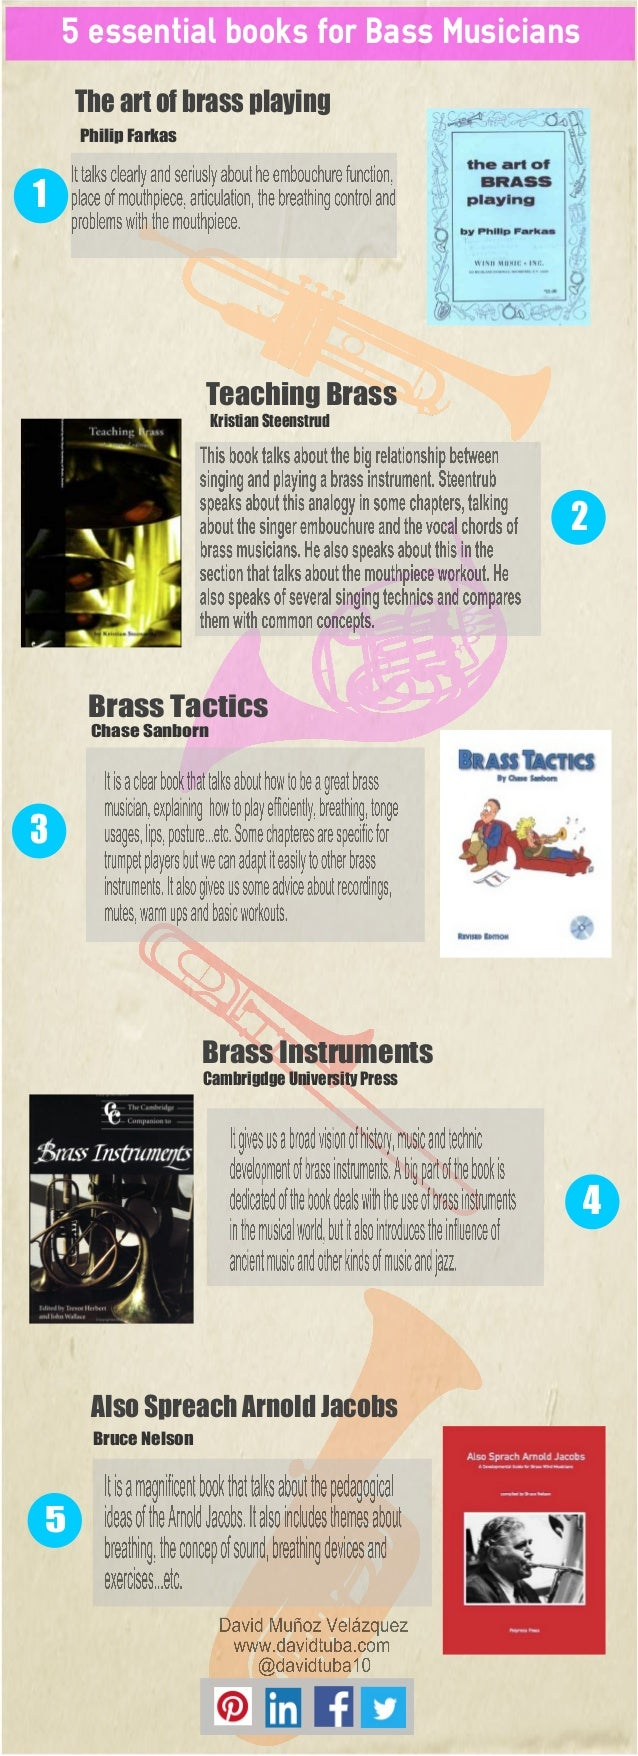 The art of brass playing Philip Farkas 1 5 essential books for Bass Musicians Teaching Brass 2 Kristian Steenstrud Brass T...